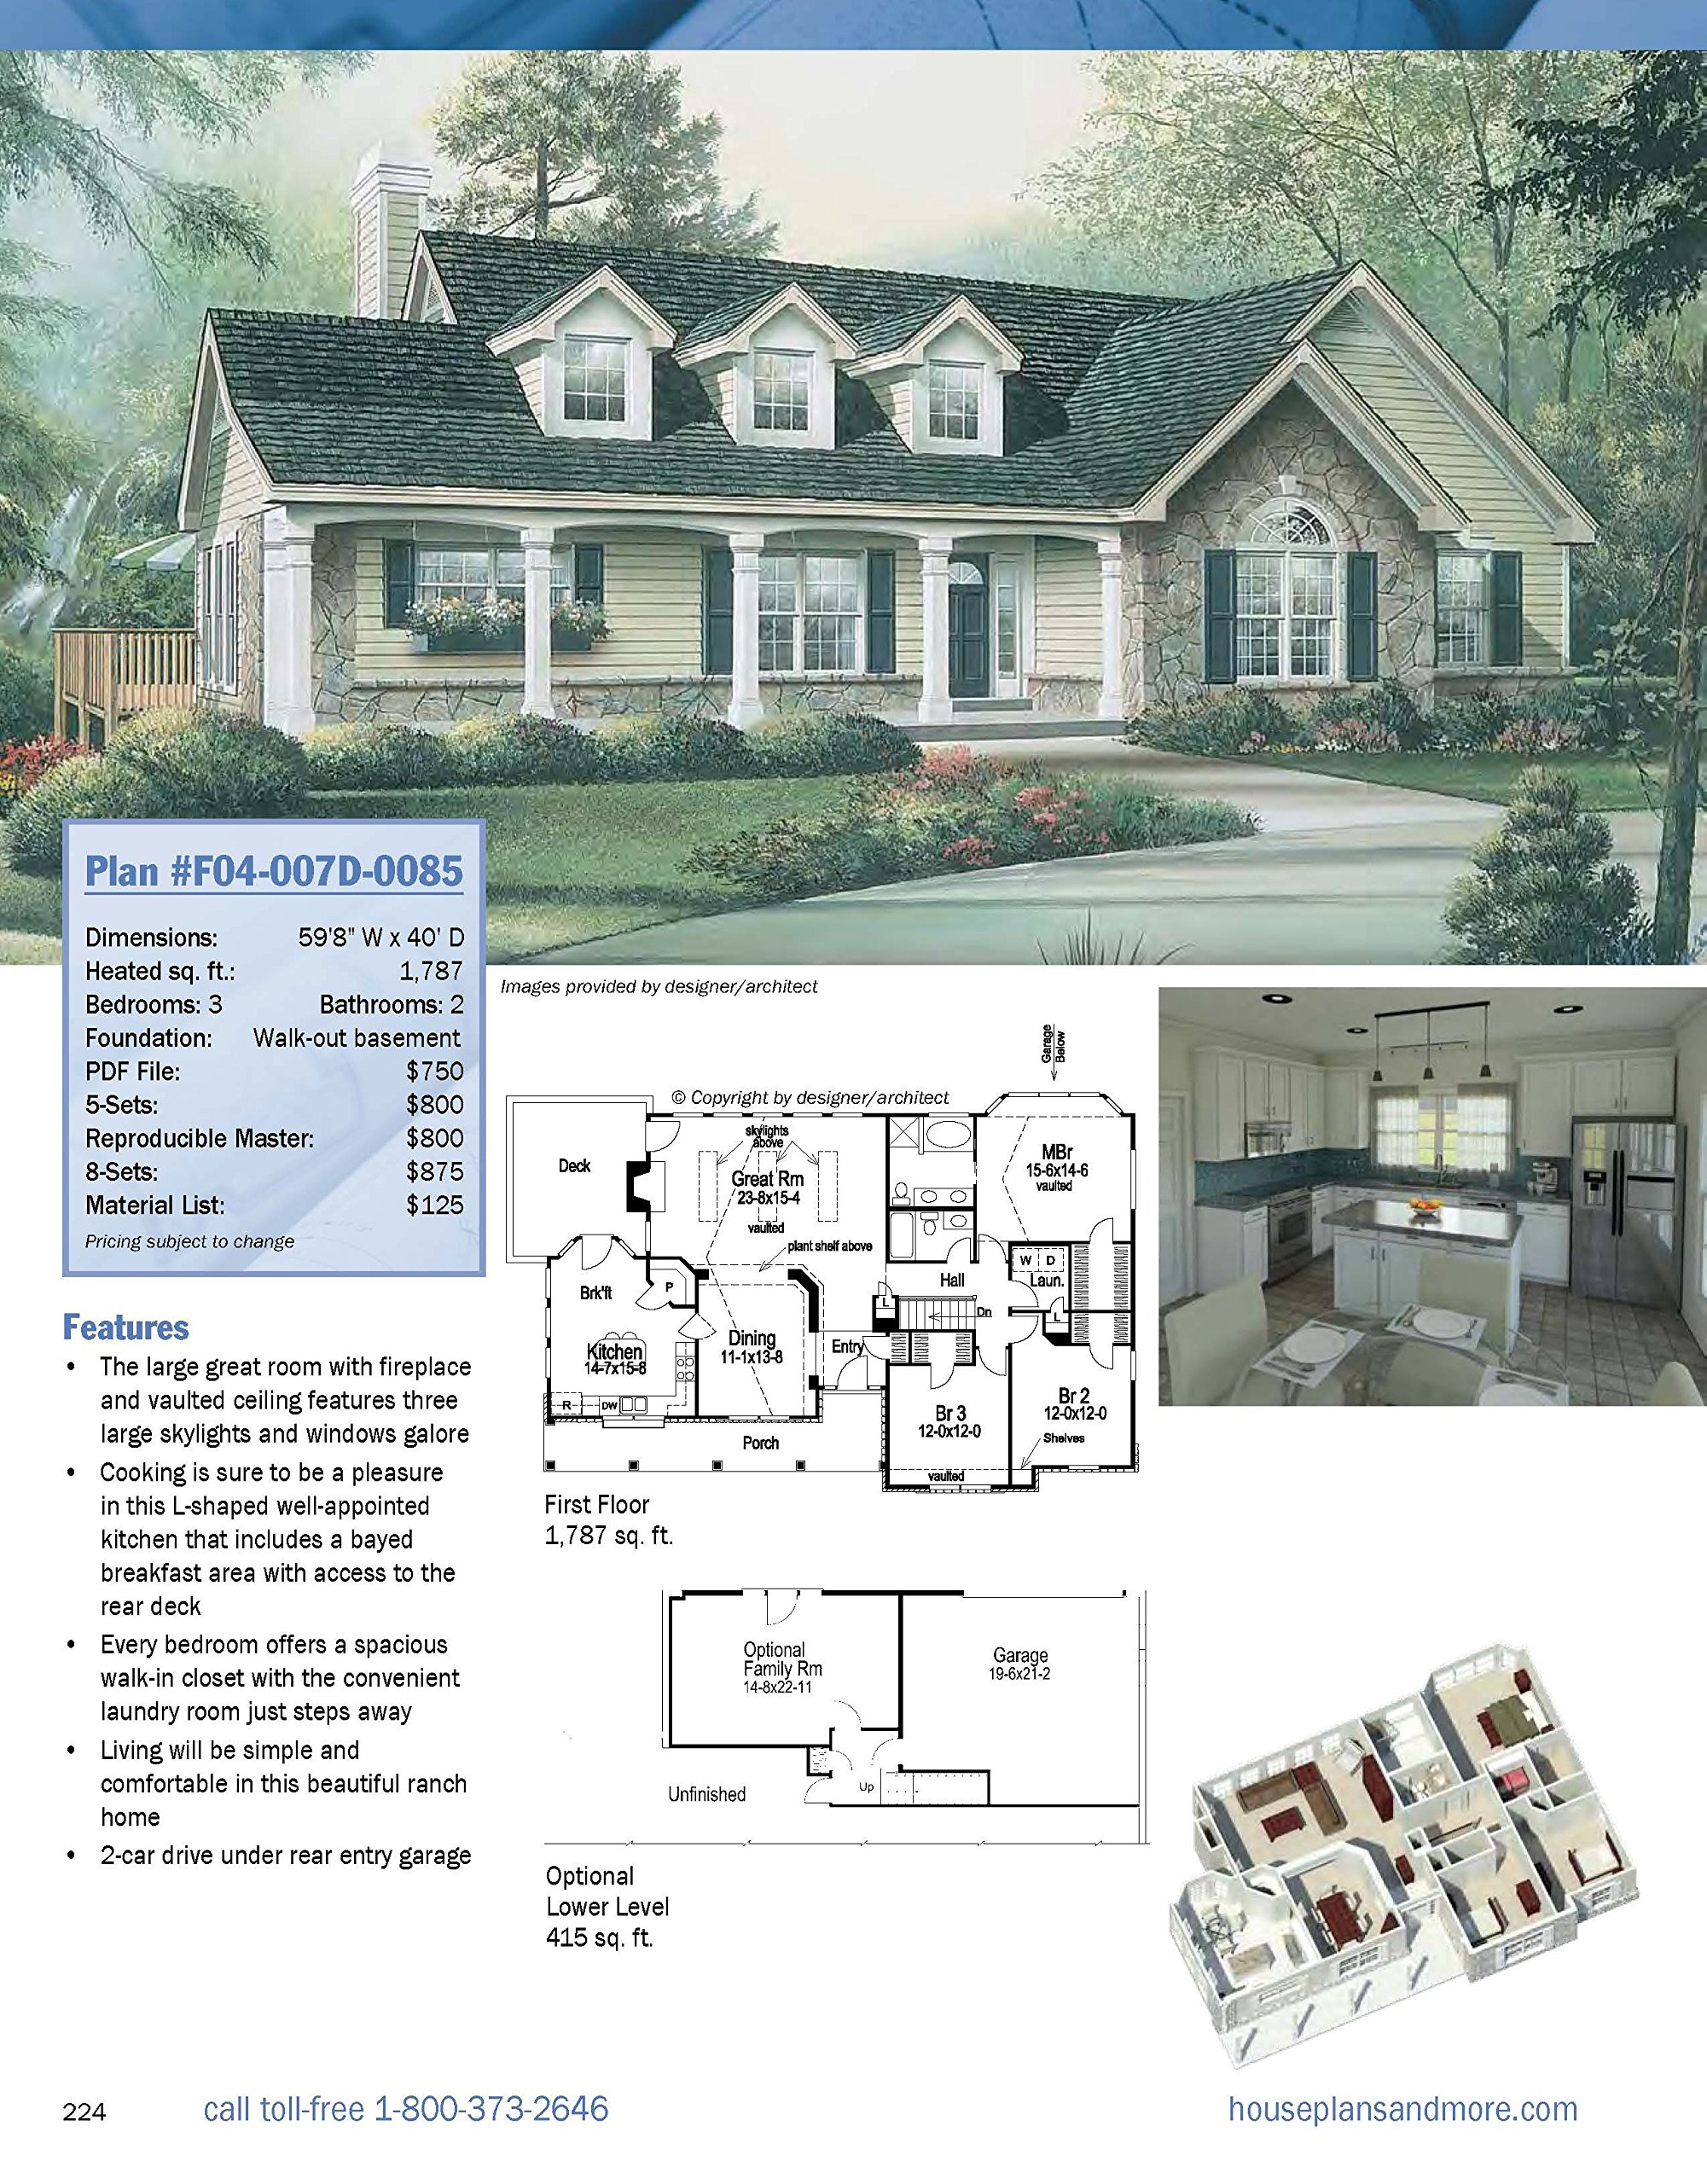 Best Selling 1 Story Home Plans, Updated 4th Edition: Over 360 Dream Home  Plans In Full Color (Creative Homeowner) Craftsman, Country, Contemporary,  ...